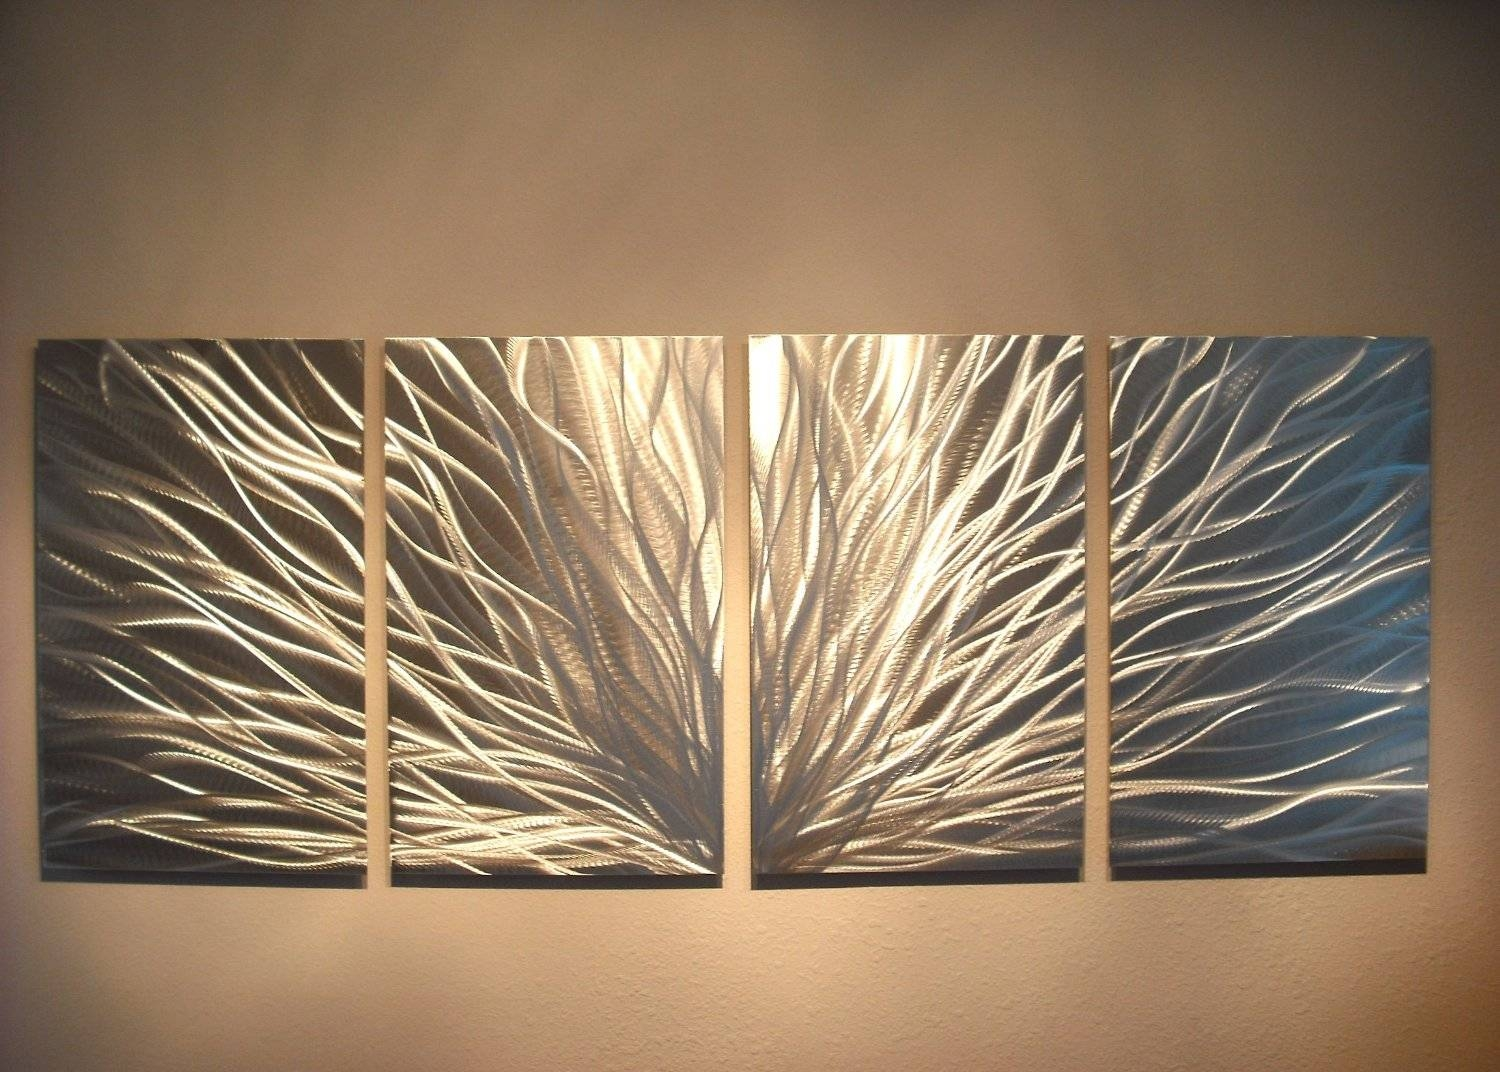 Wall Art Designs: Modern Abstract Wall Art Brown Cheap Pertaining To Most Recent Abstract Wall Art (View 8 of 15)